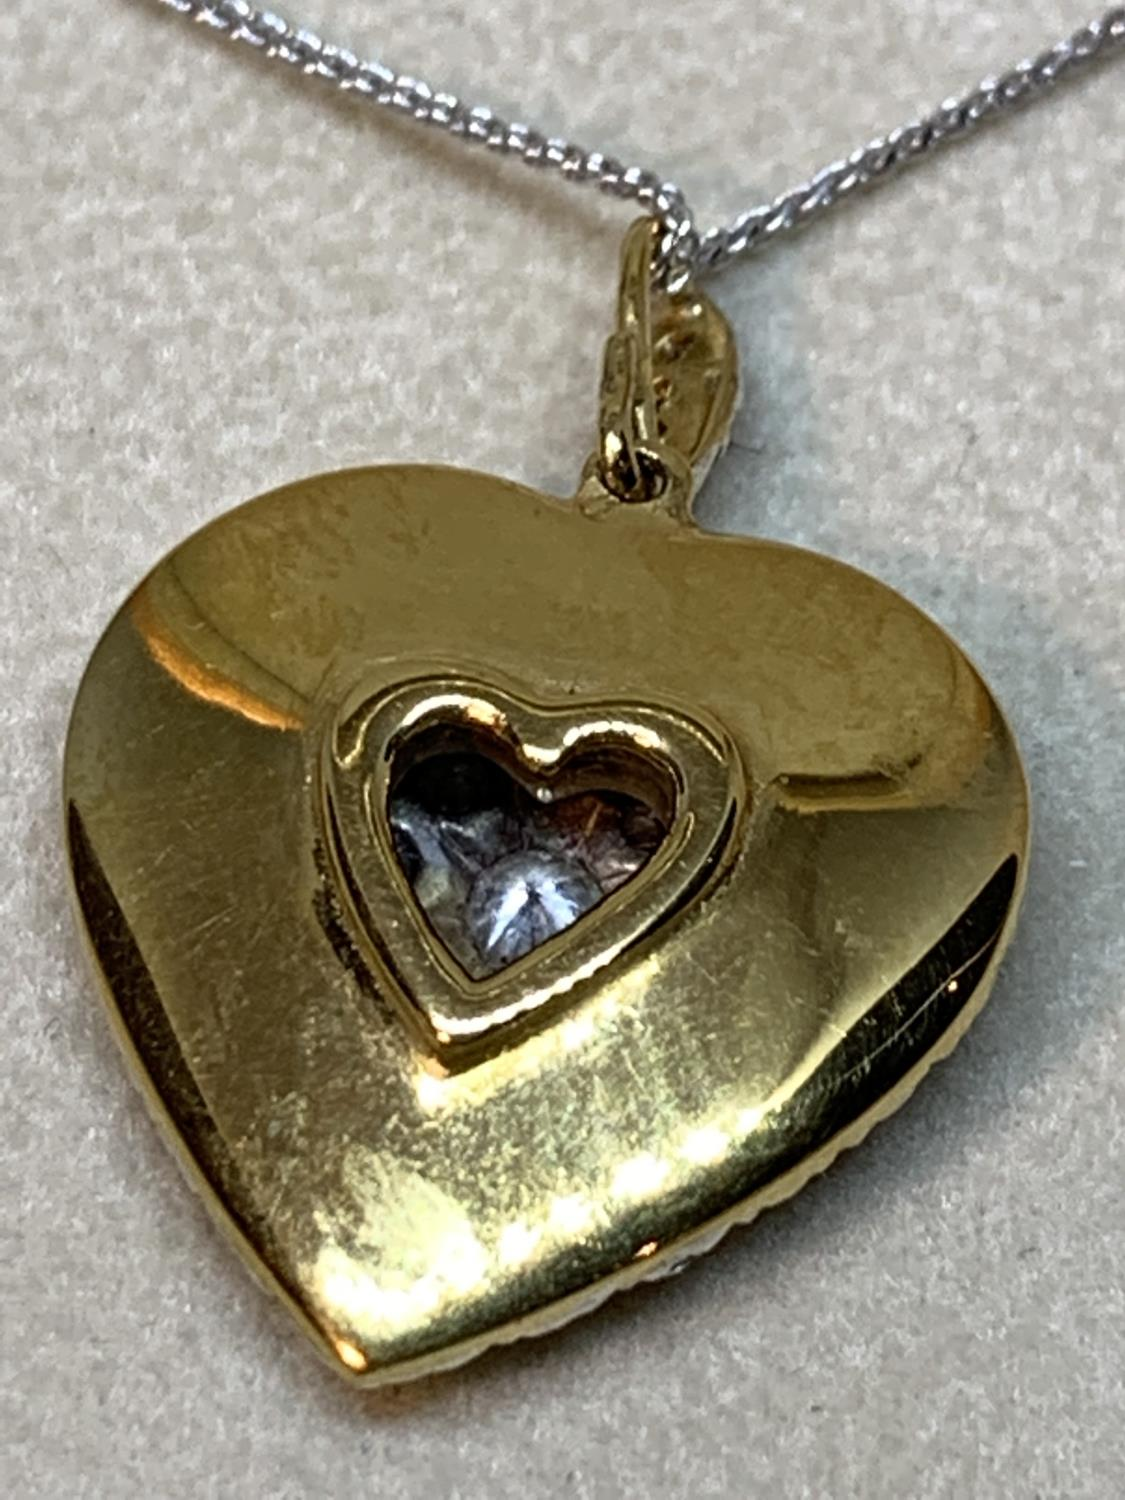 A 15 CARAT WHITE AND YELLOW GOLD LARGE DIAMOND ENCRUSTED HEART PENDANT WITH CHAIN LENGTH 44CM IN A - Image 5 of 8